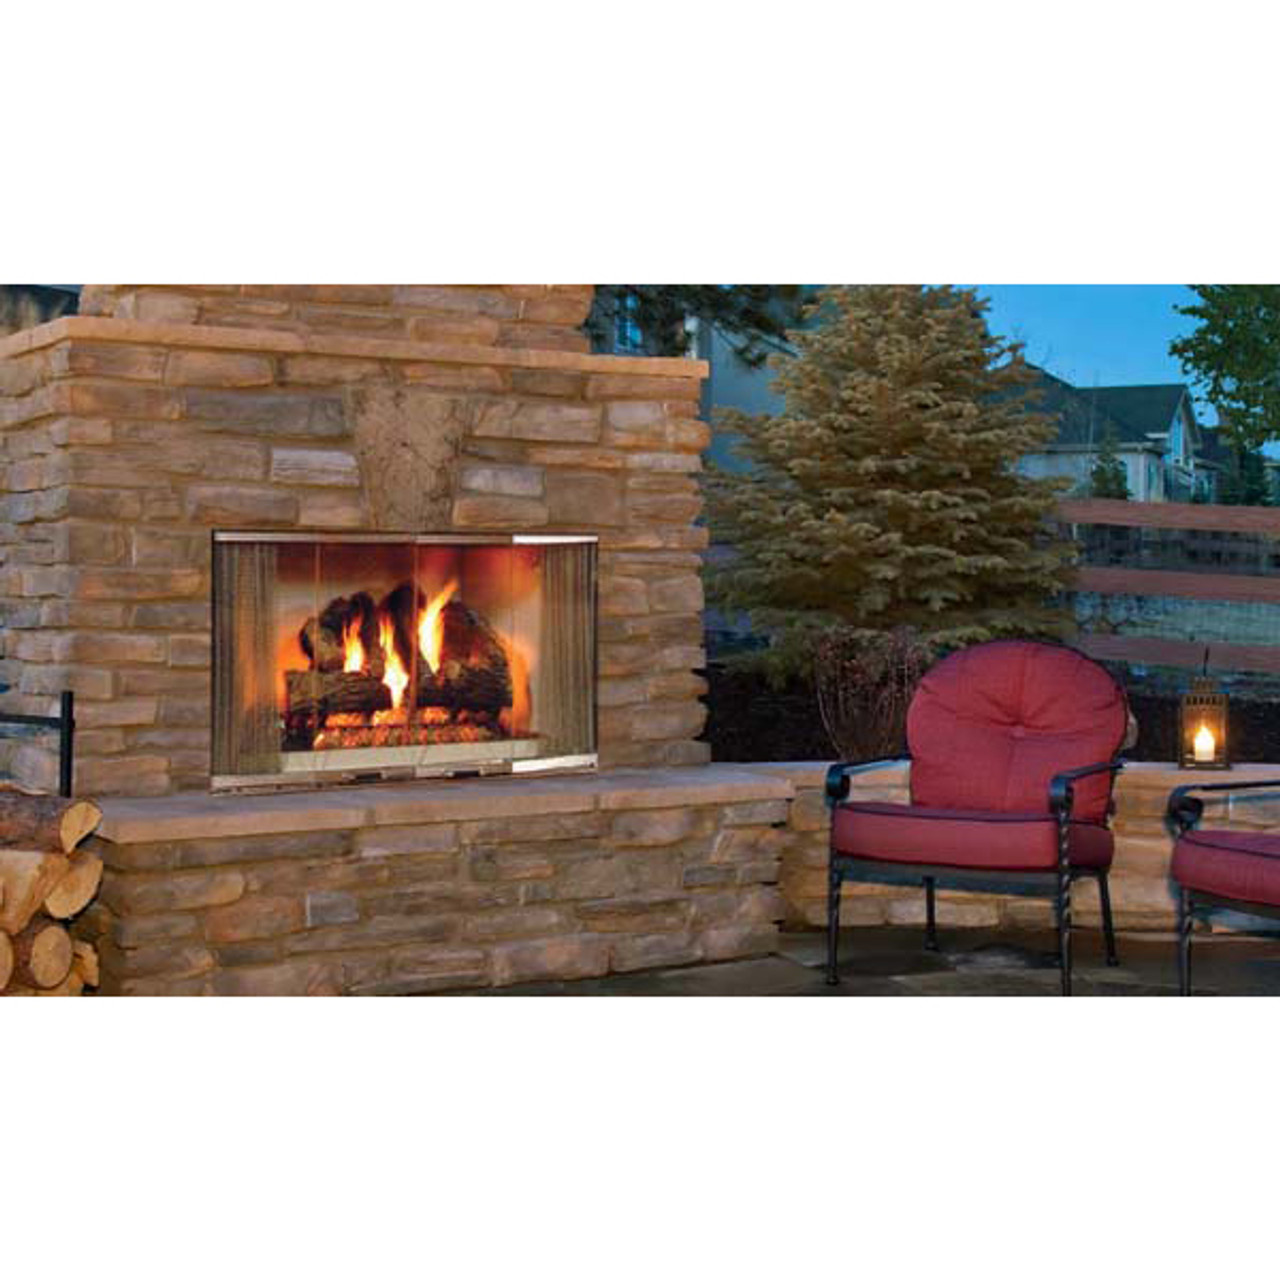 Majestic Montana Radiant Outdoor Wood Burning Fireplace 42 Inch